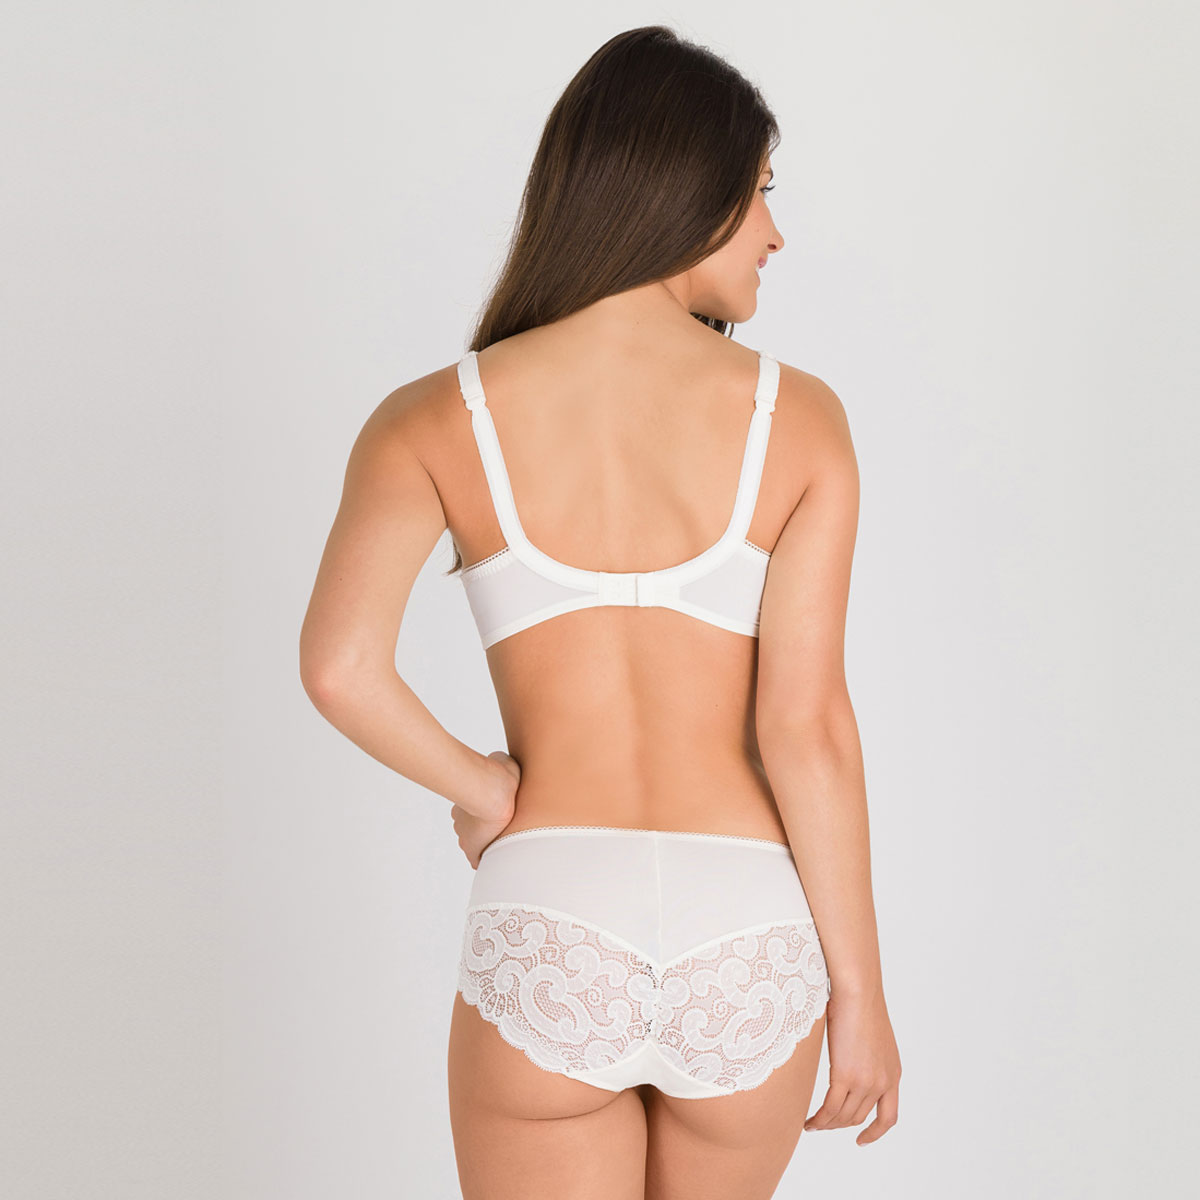 Balcony Bra in Ivory – Invisible Elegance-PLAYTEX